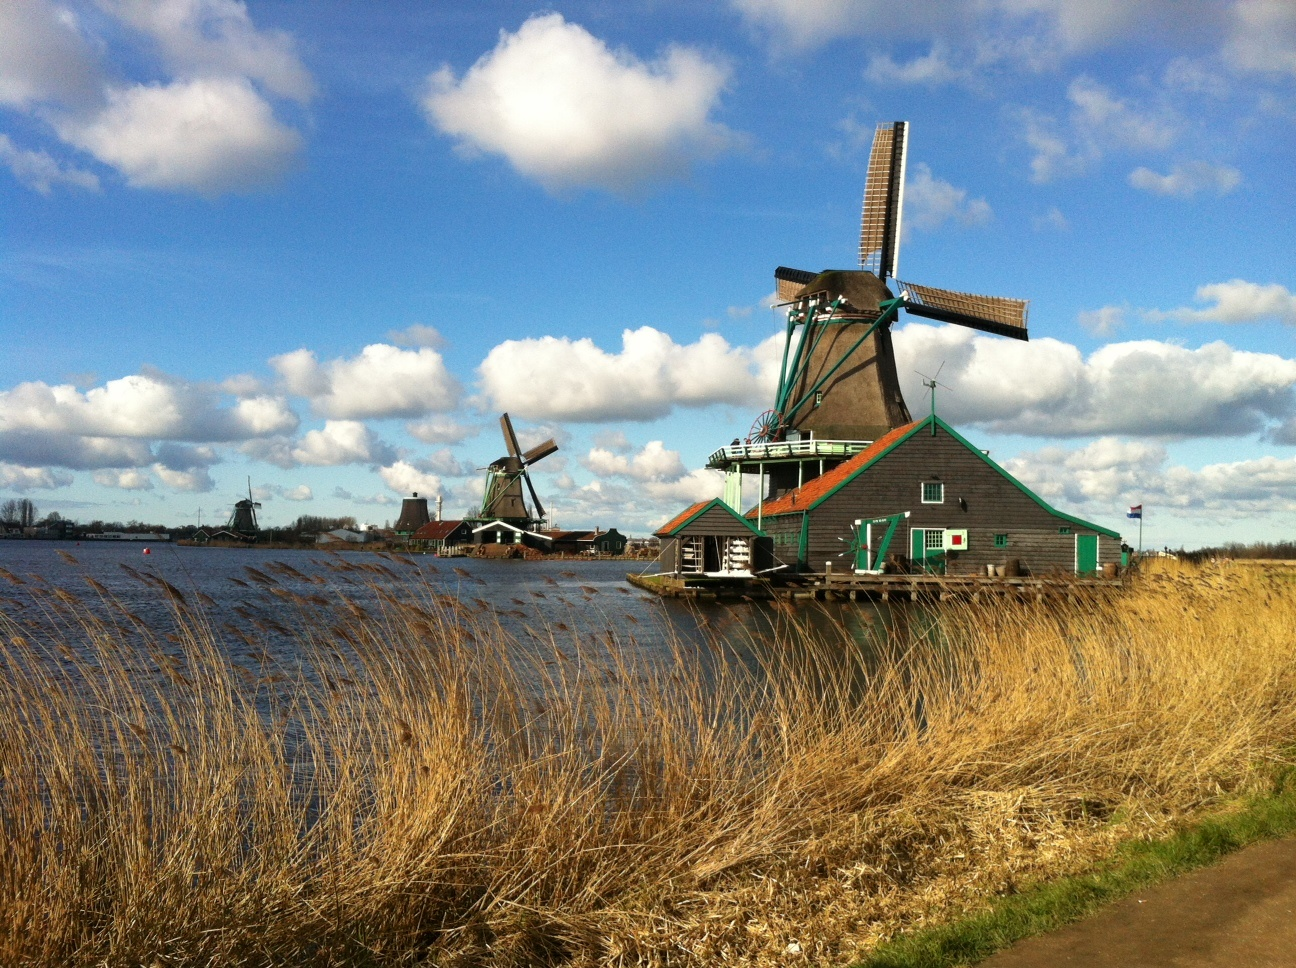 Tours to Zaanse Schans from Amsterdam